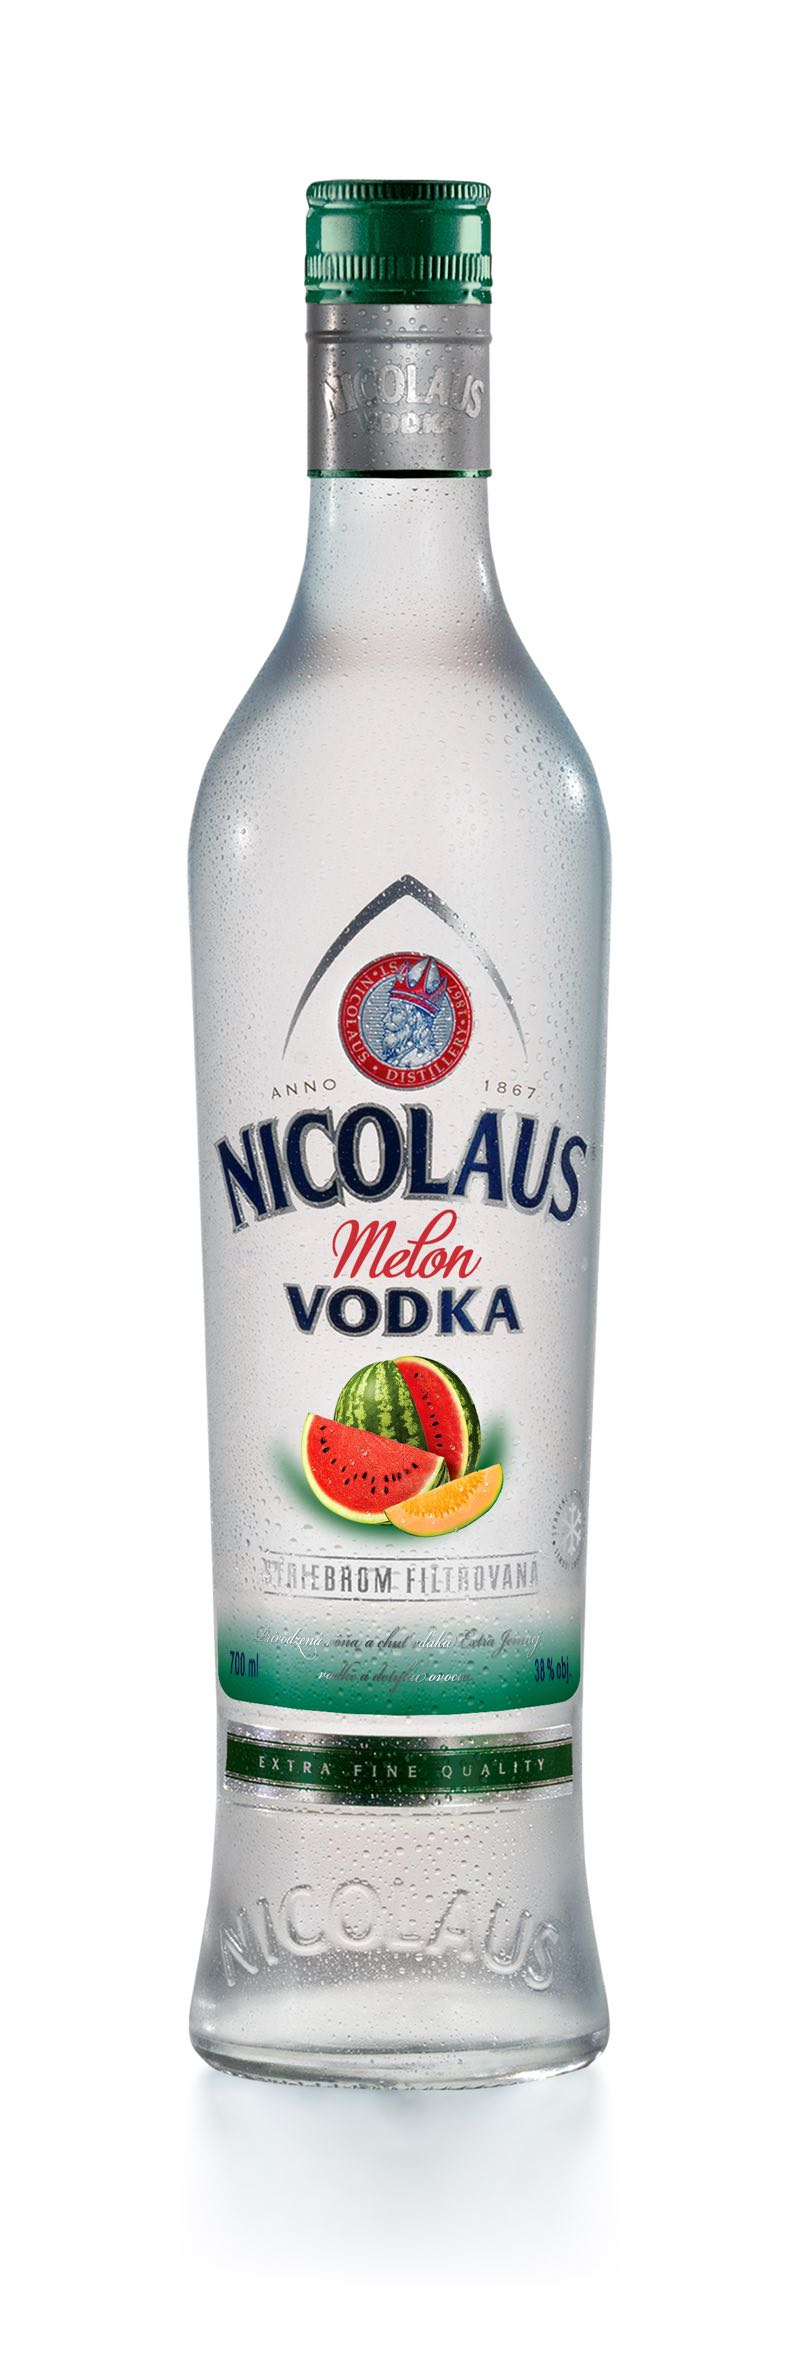 Nicolaus Melon Vodka 38% 0,7l